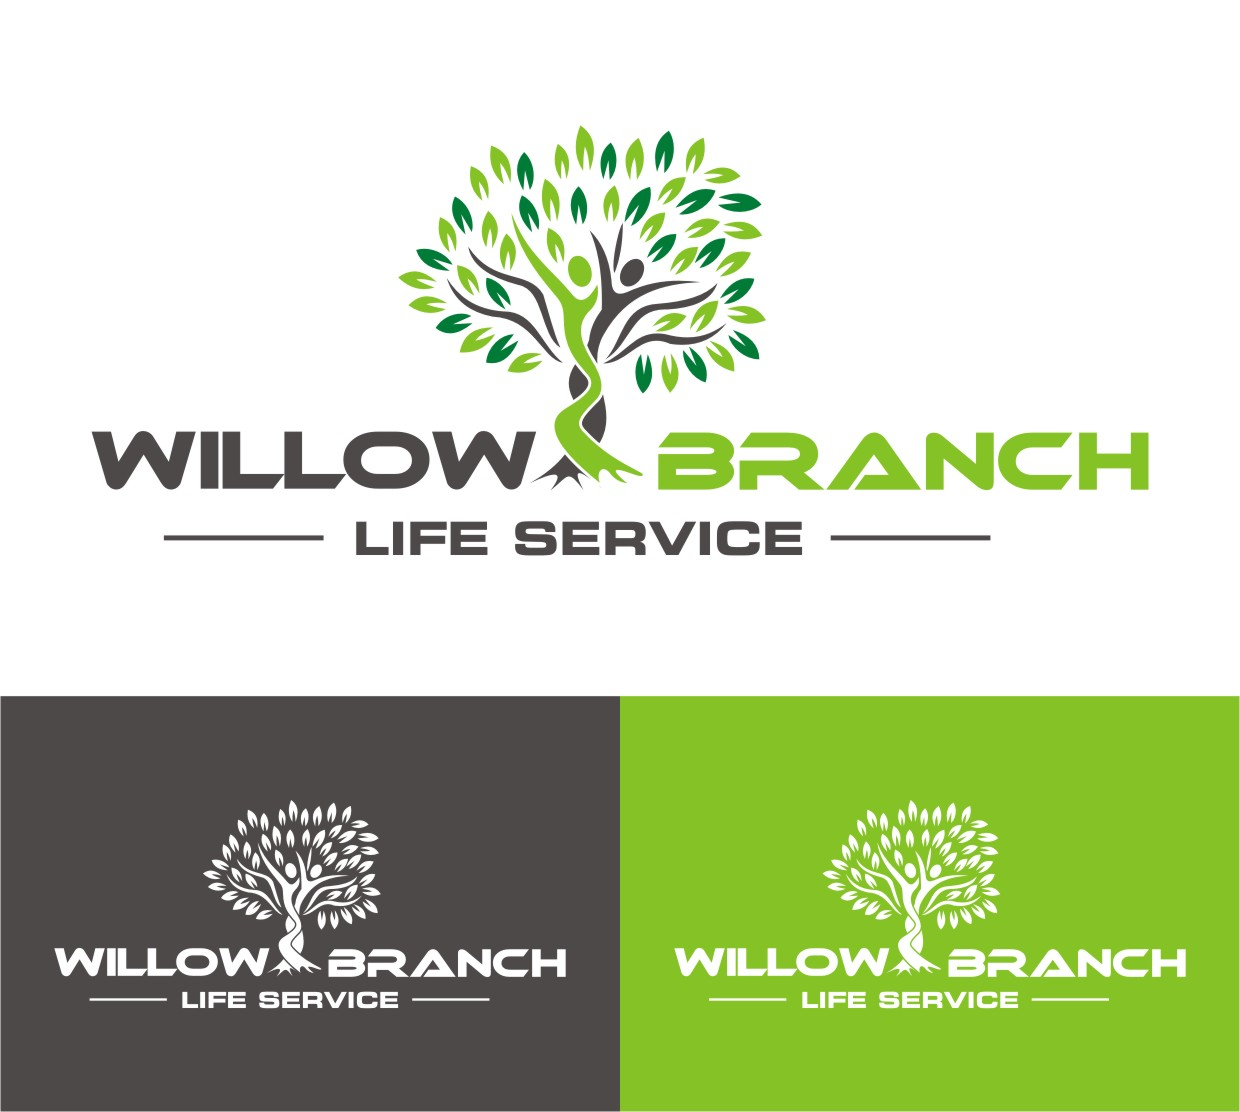 Logo Design by Spider Graphics - Entry No. 417 in the Logo Design Contest Artistic Logo Design for Willow Branch Life Service.